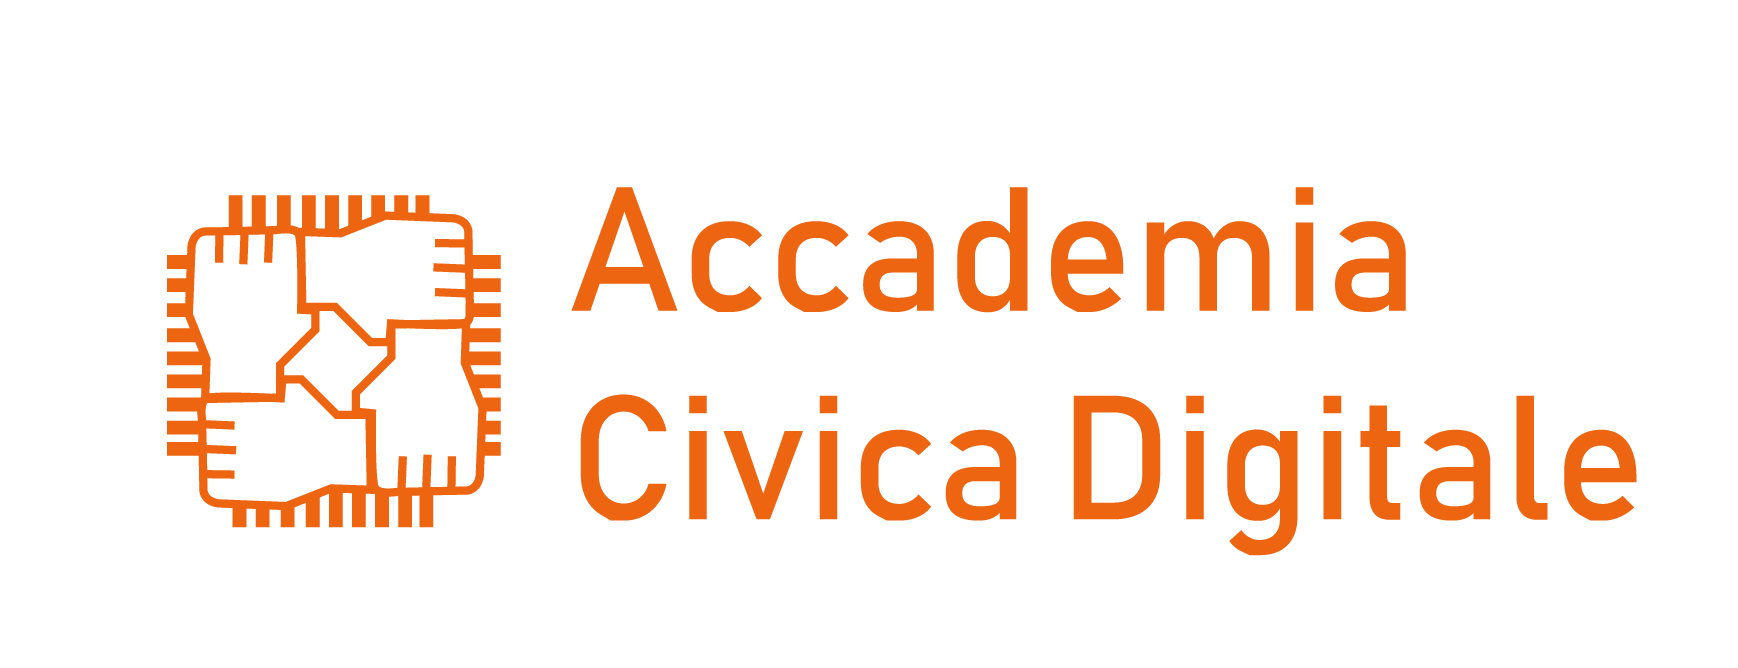 Accademia Civica Digitale